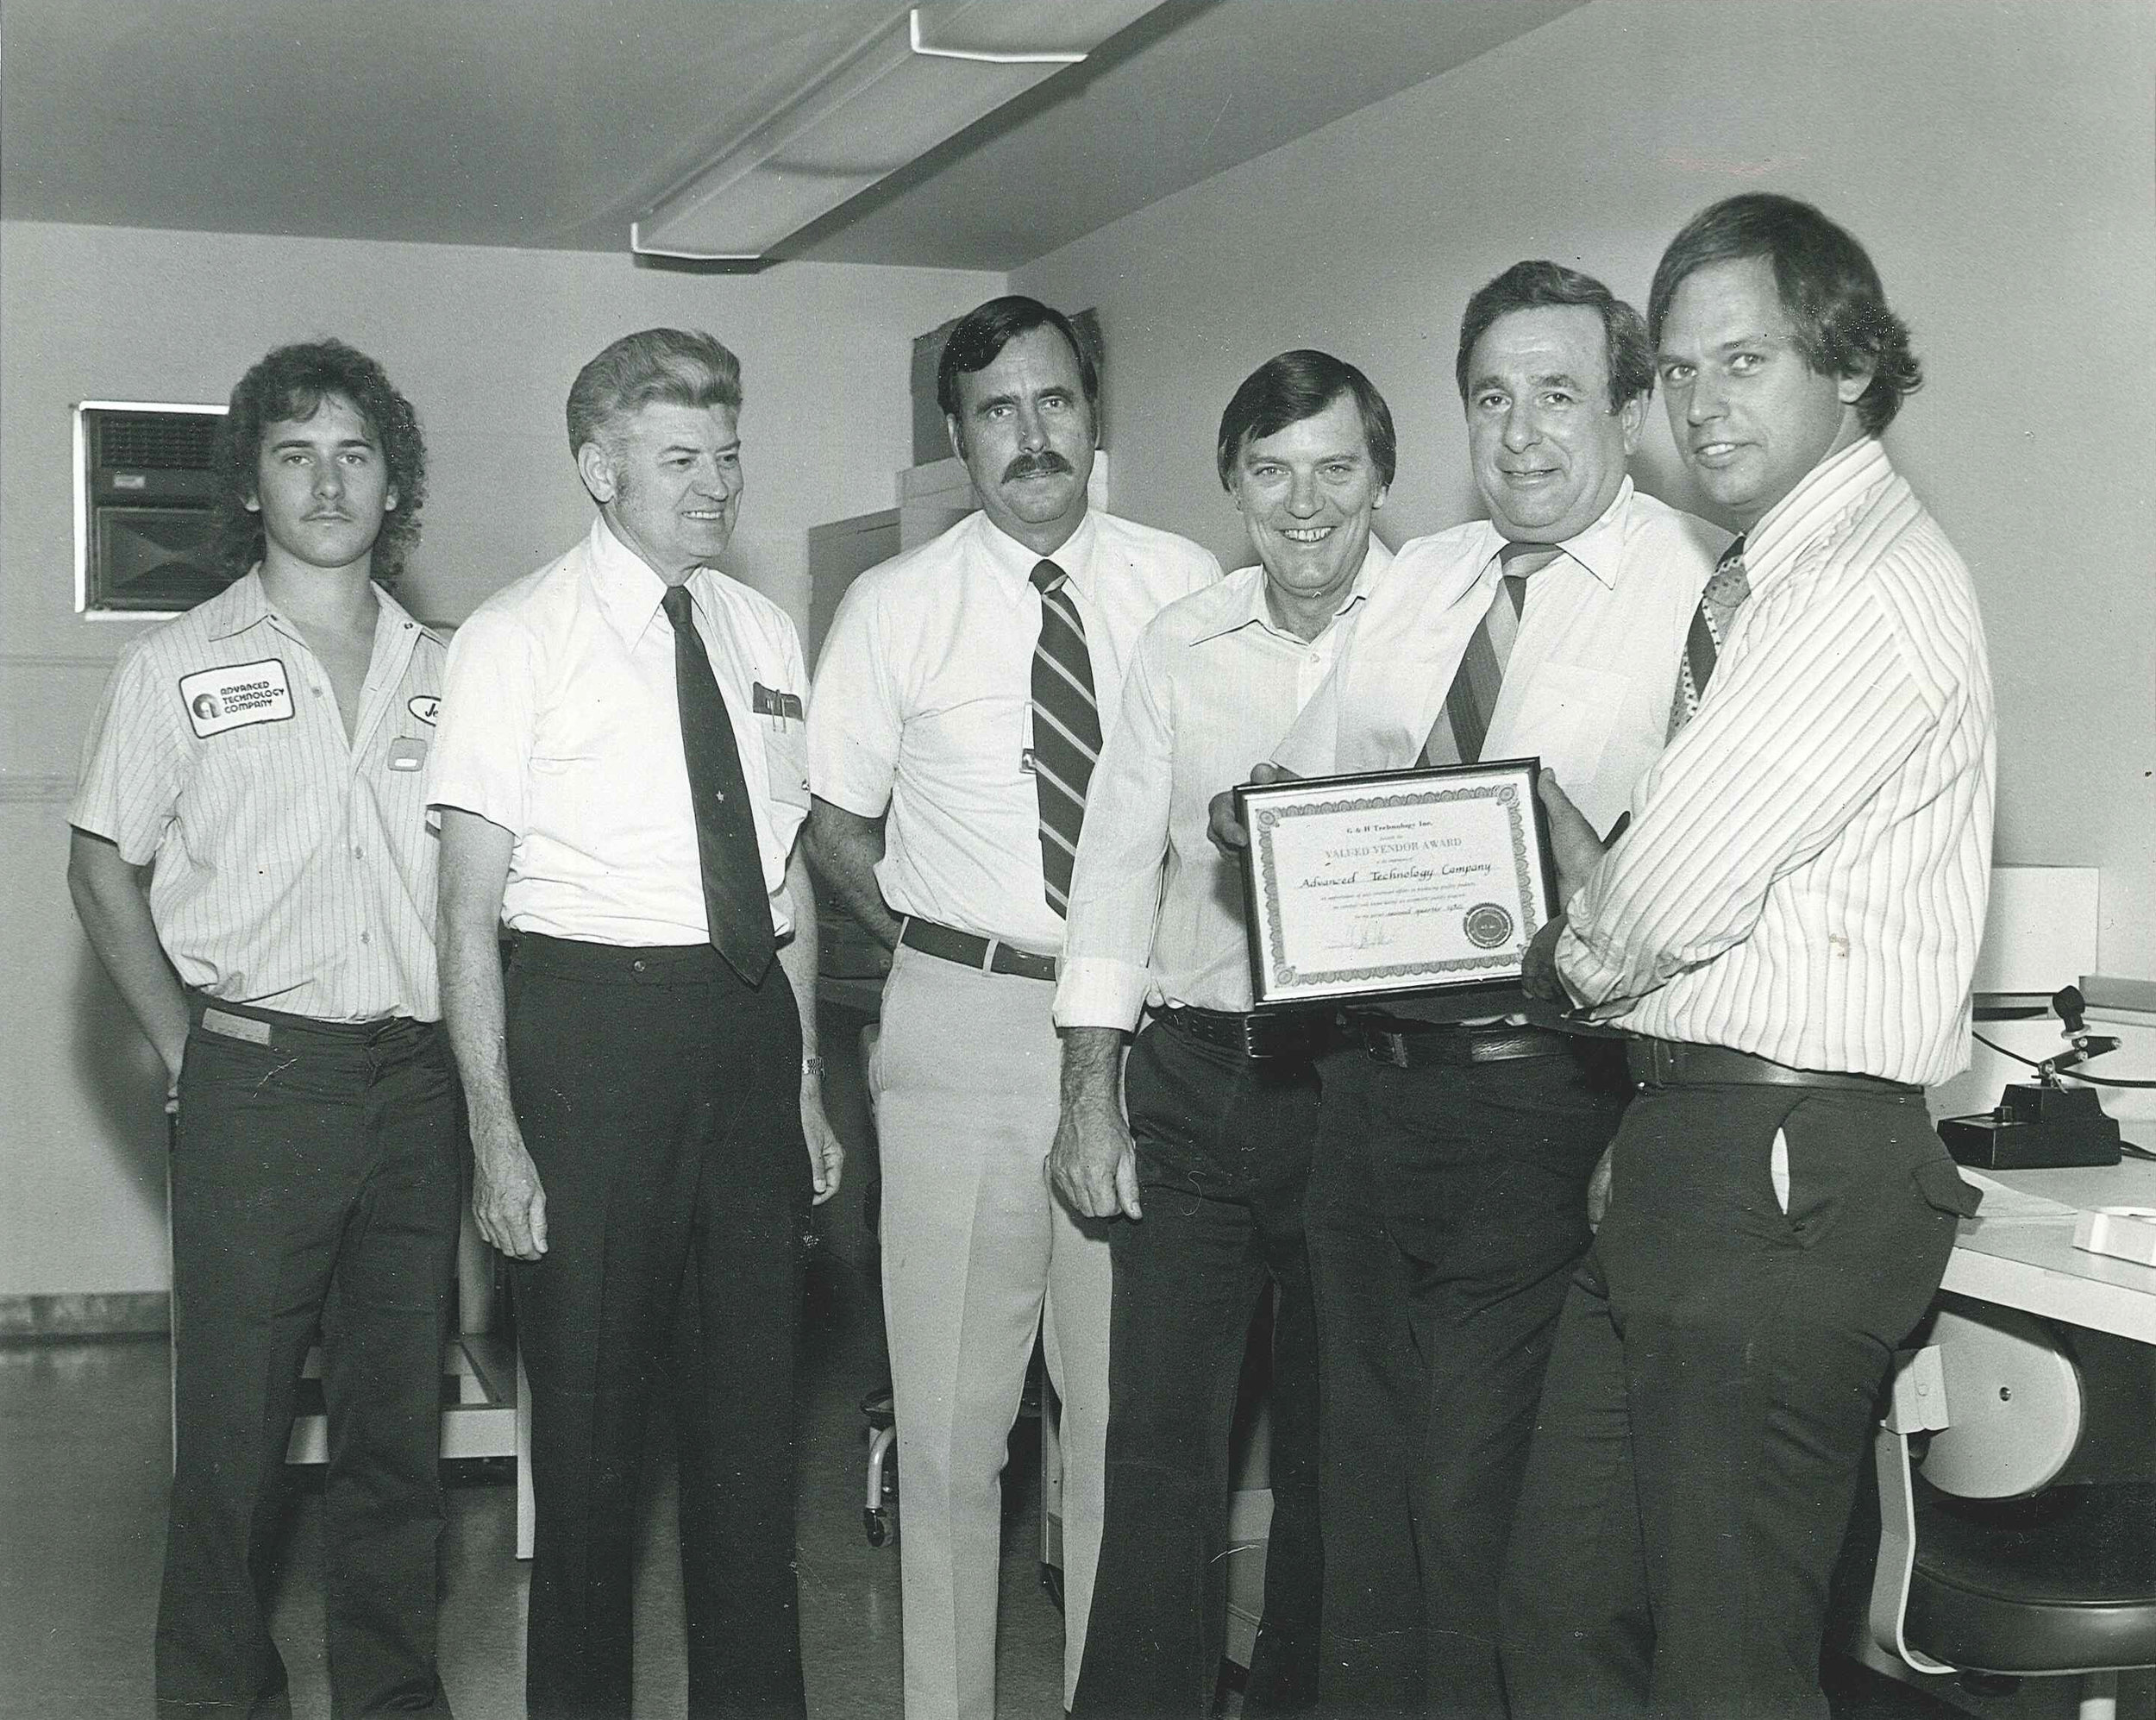 Pictured left to right: Jeff Lesovsky, ???, ???, founder Jay Frey, founder Bob DeSilvestri, and ???. circa 1980